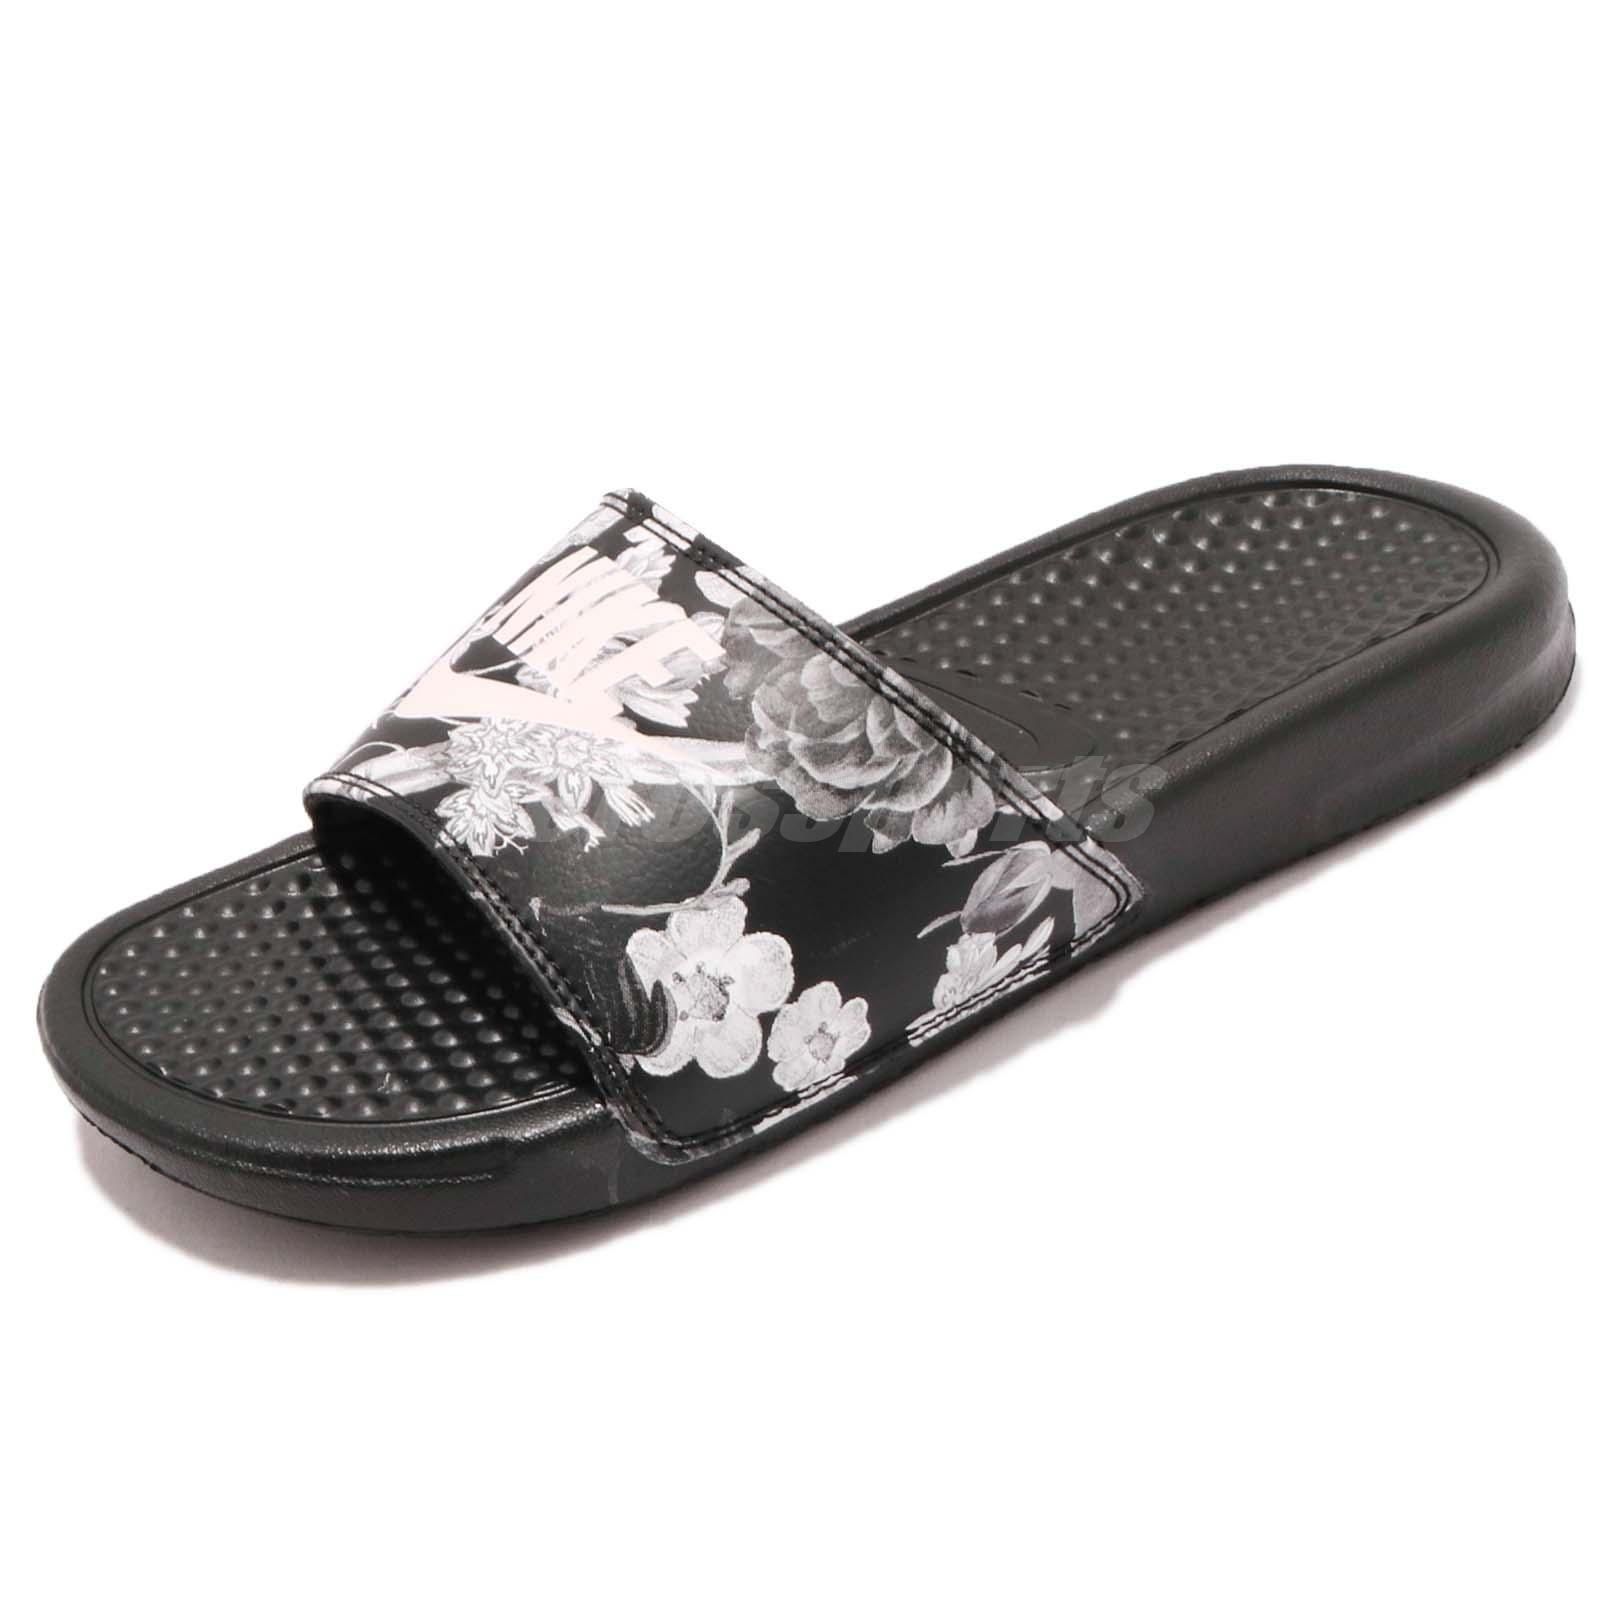 83470f02ed8718 Details about Nike Wmns Benassi JDI Print Floral Black White Women Sports  Sandals 618919-020